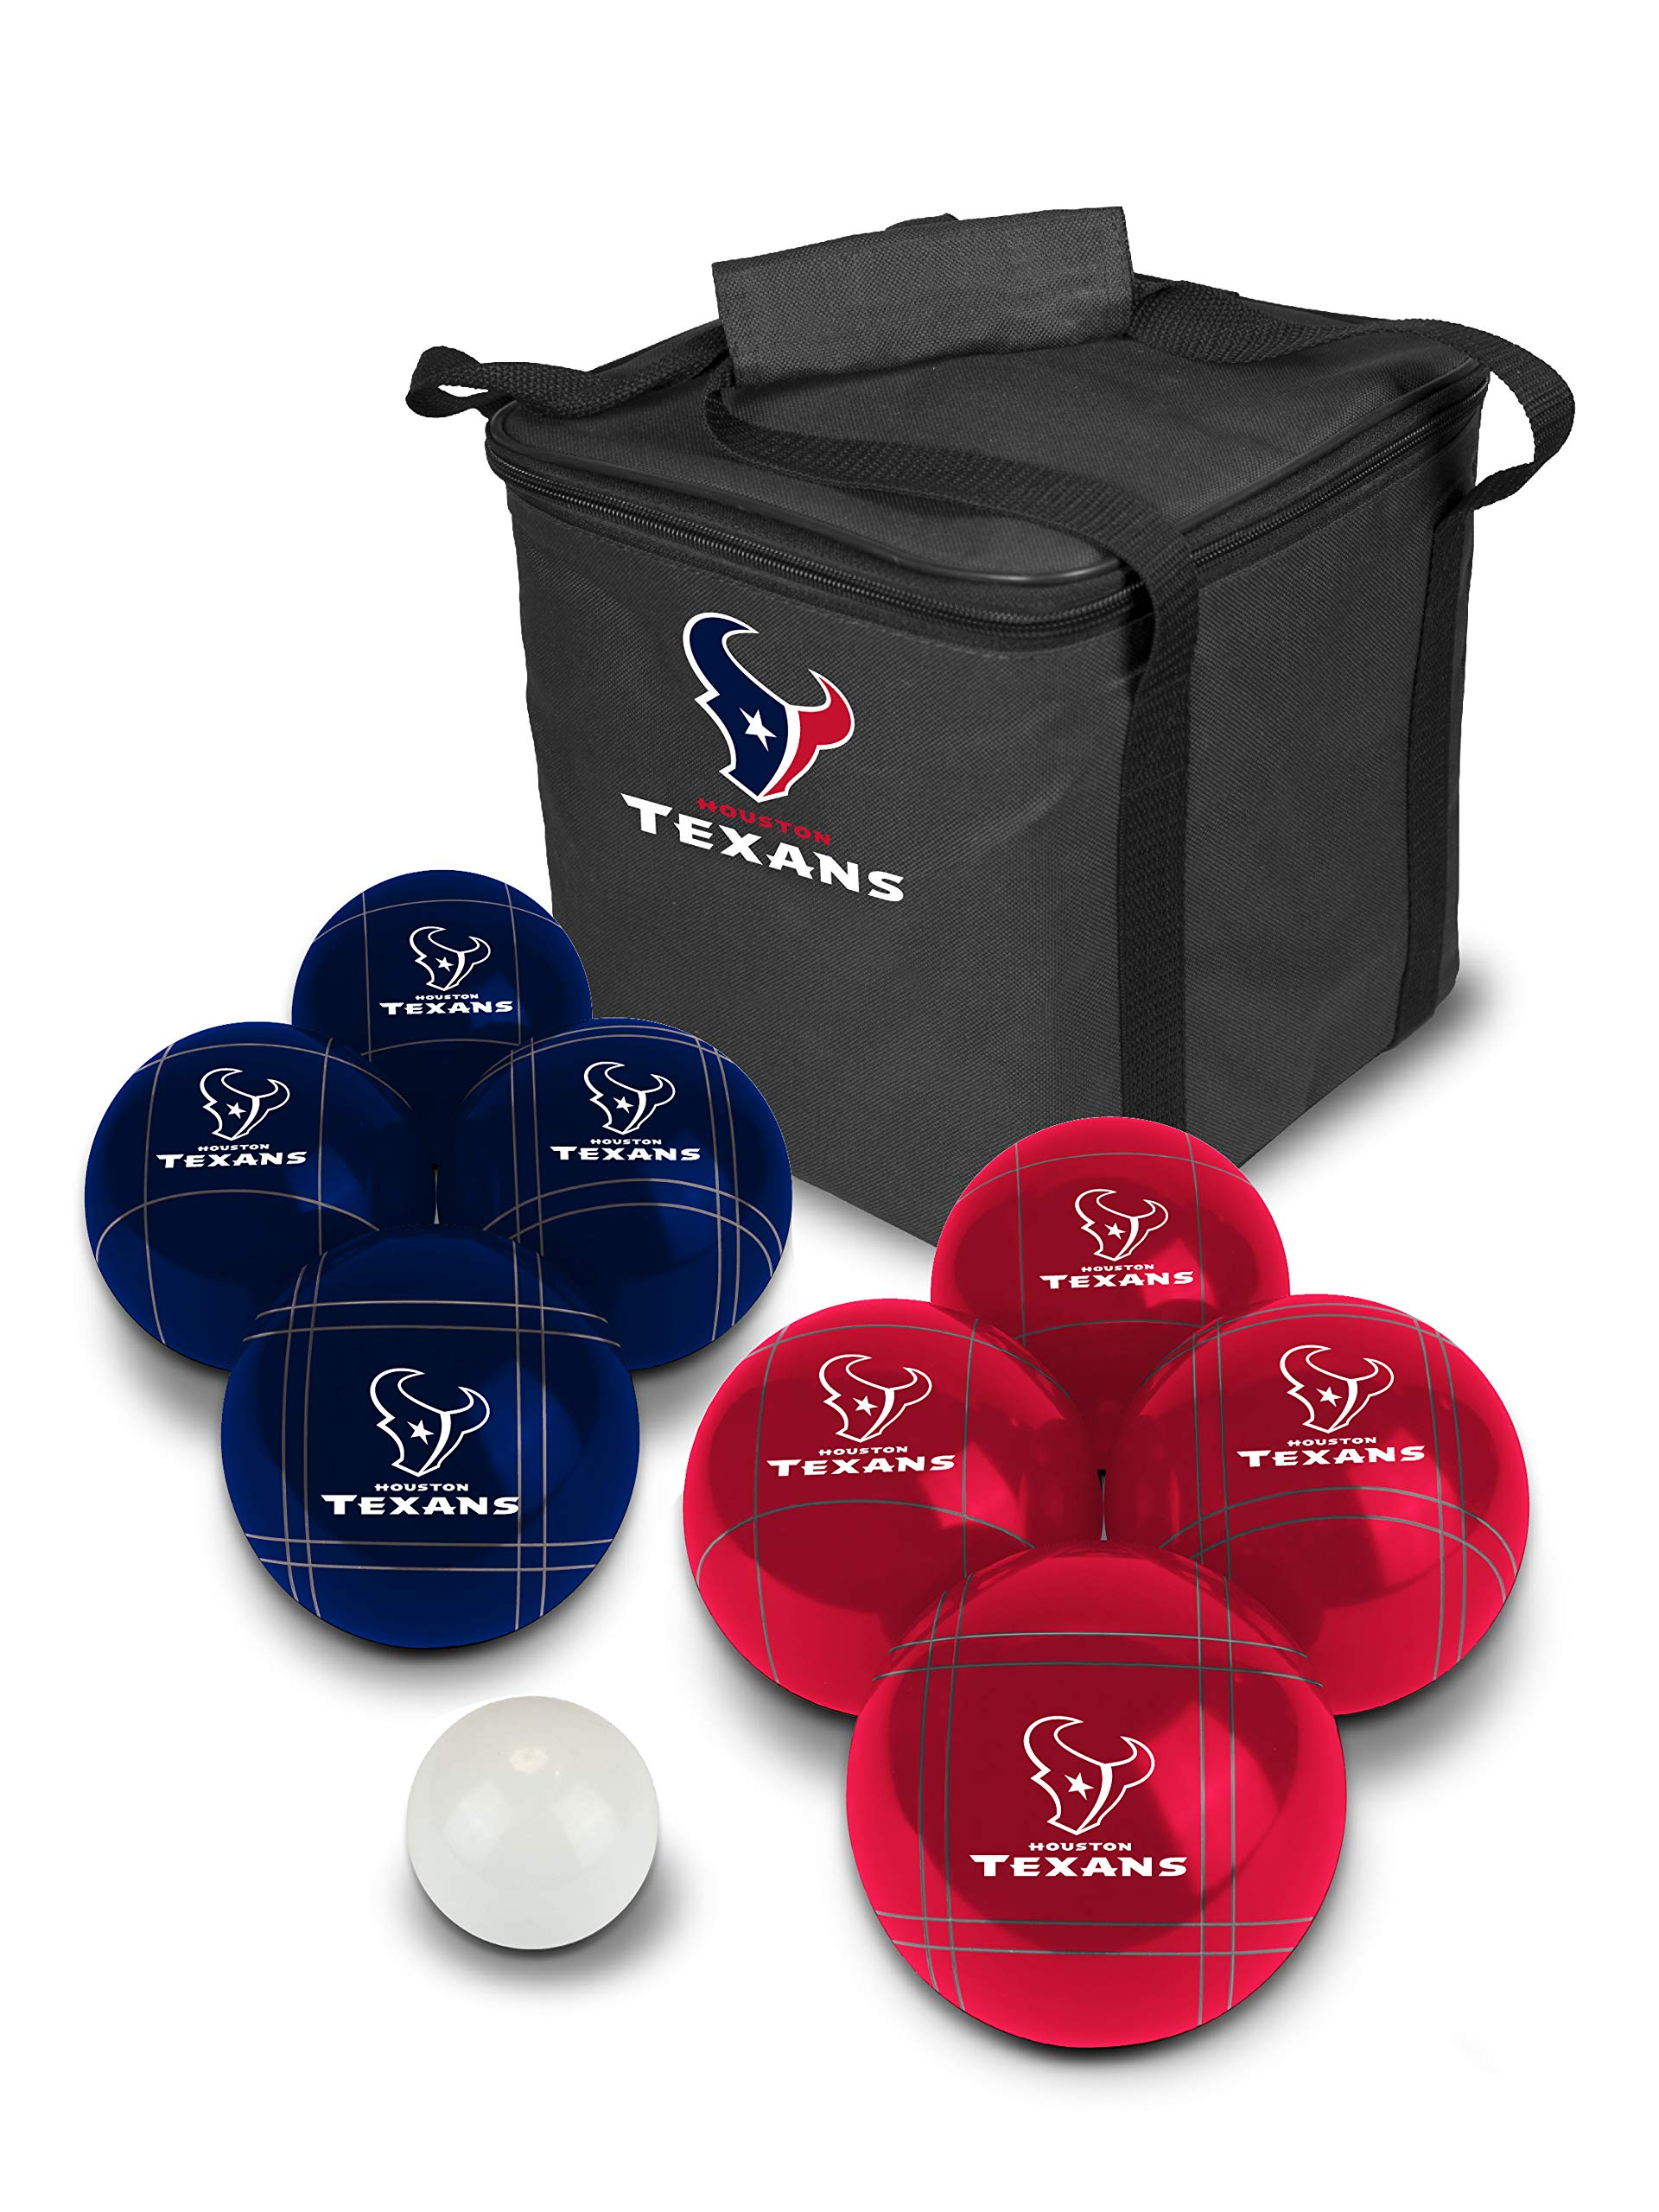 PROLINE NFL Houston Texans Bocce Ball Set by PROLINE (Image #1)